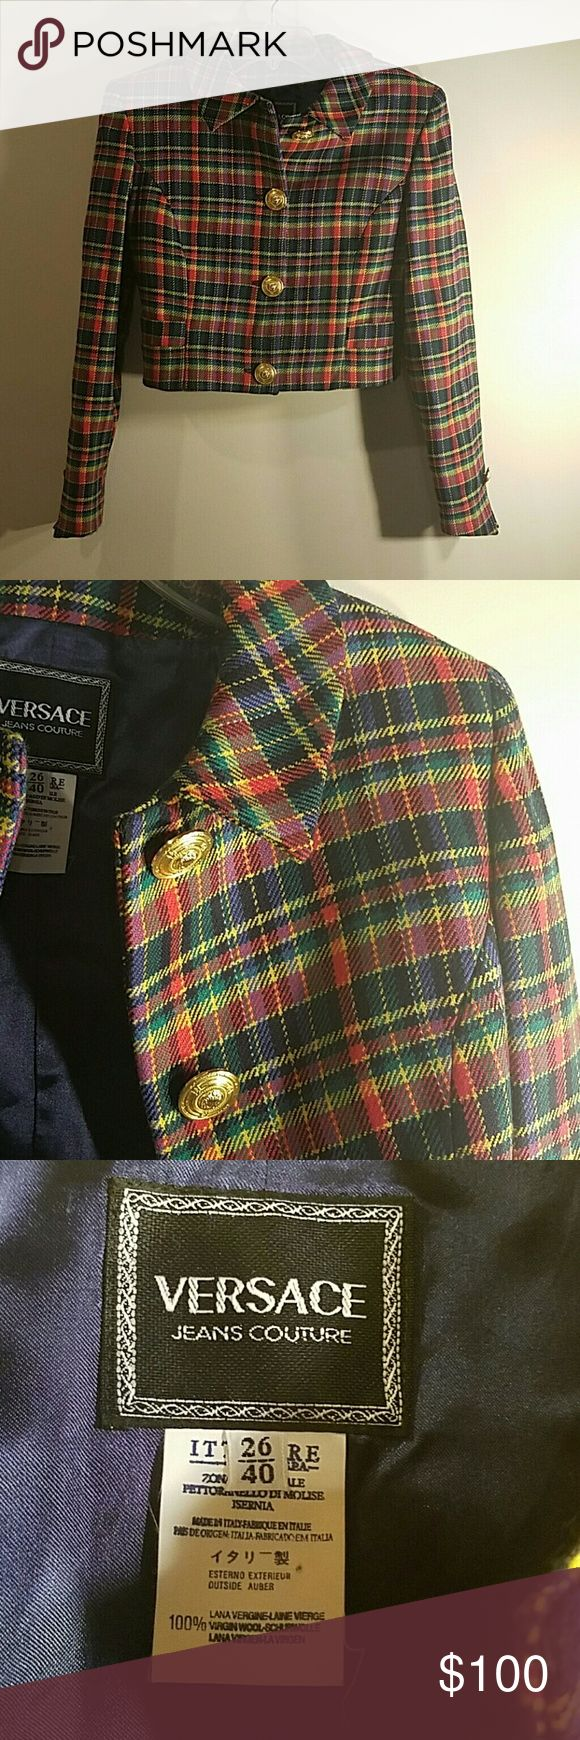 Selling this Versace Couture Plaid Cropped Blazer on Poshmark! My username is: spoiledbratenvy. #shopmycloset #poshmark #fashion #shopping #style #forsale #Versace Jeans Couture #Jackets & Blazers